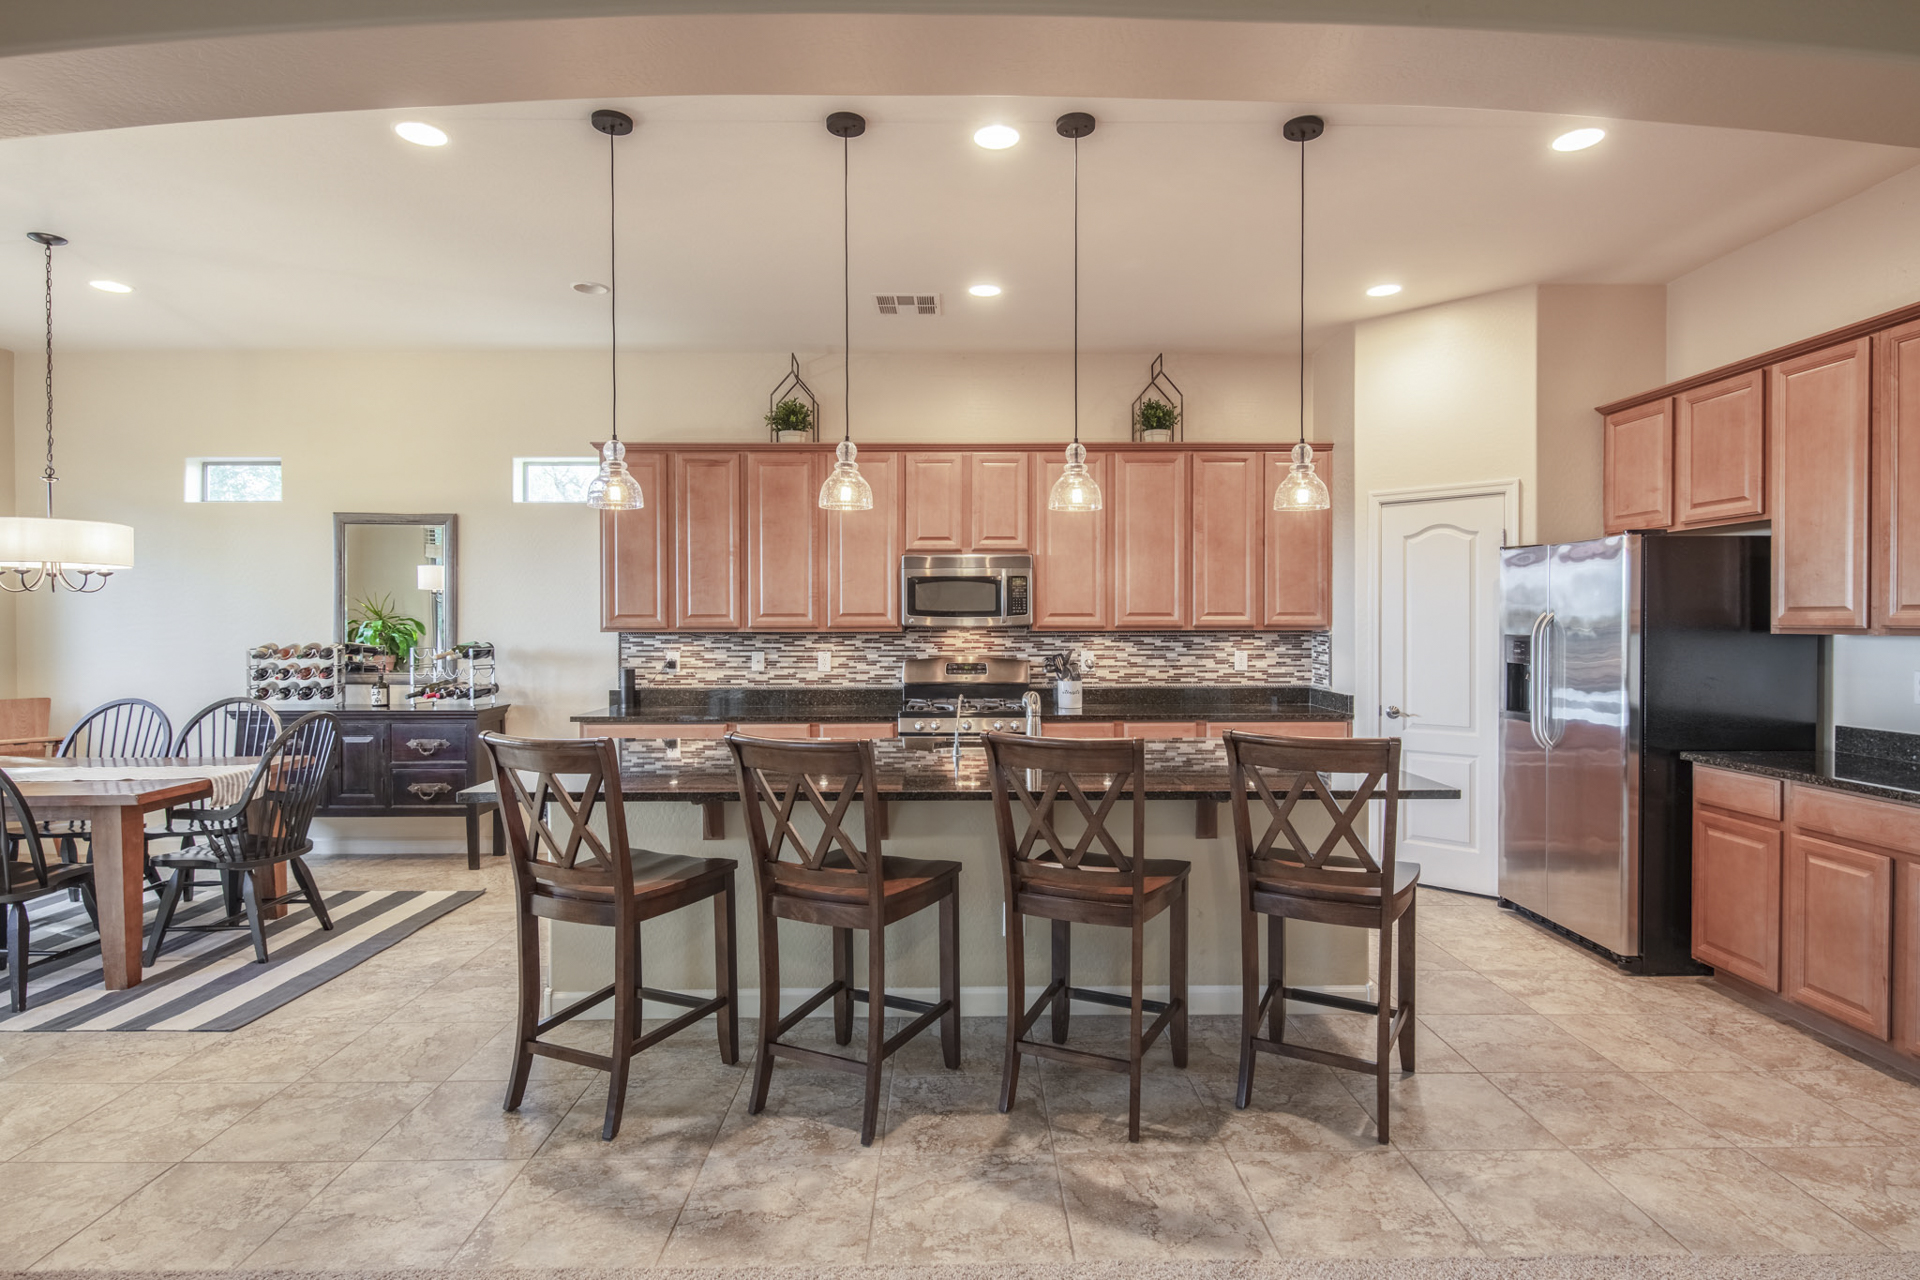 UNDER CONTRACT - 4631 S Burma Rd, Gilbert, AZ 85297 - Layton Lakes